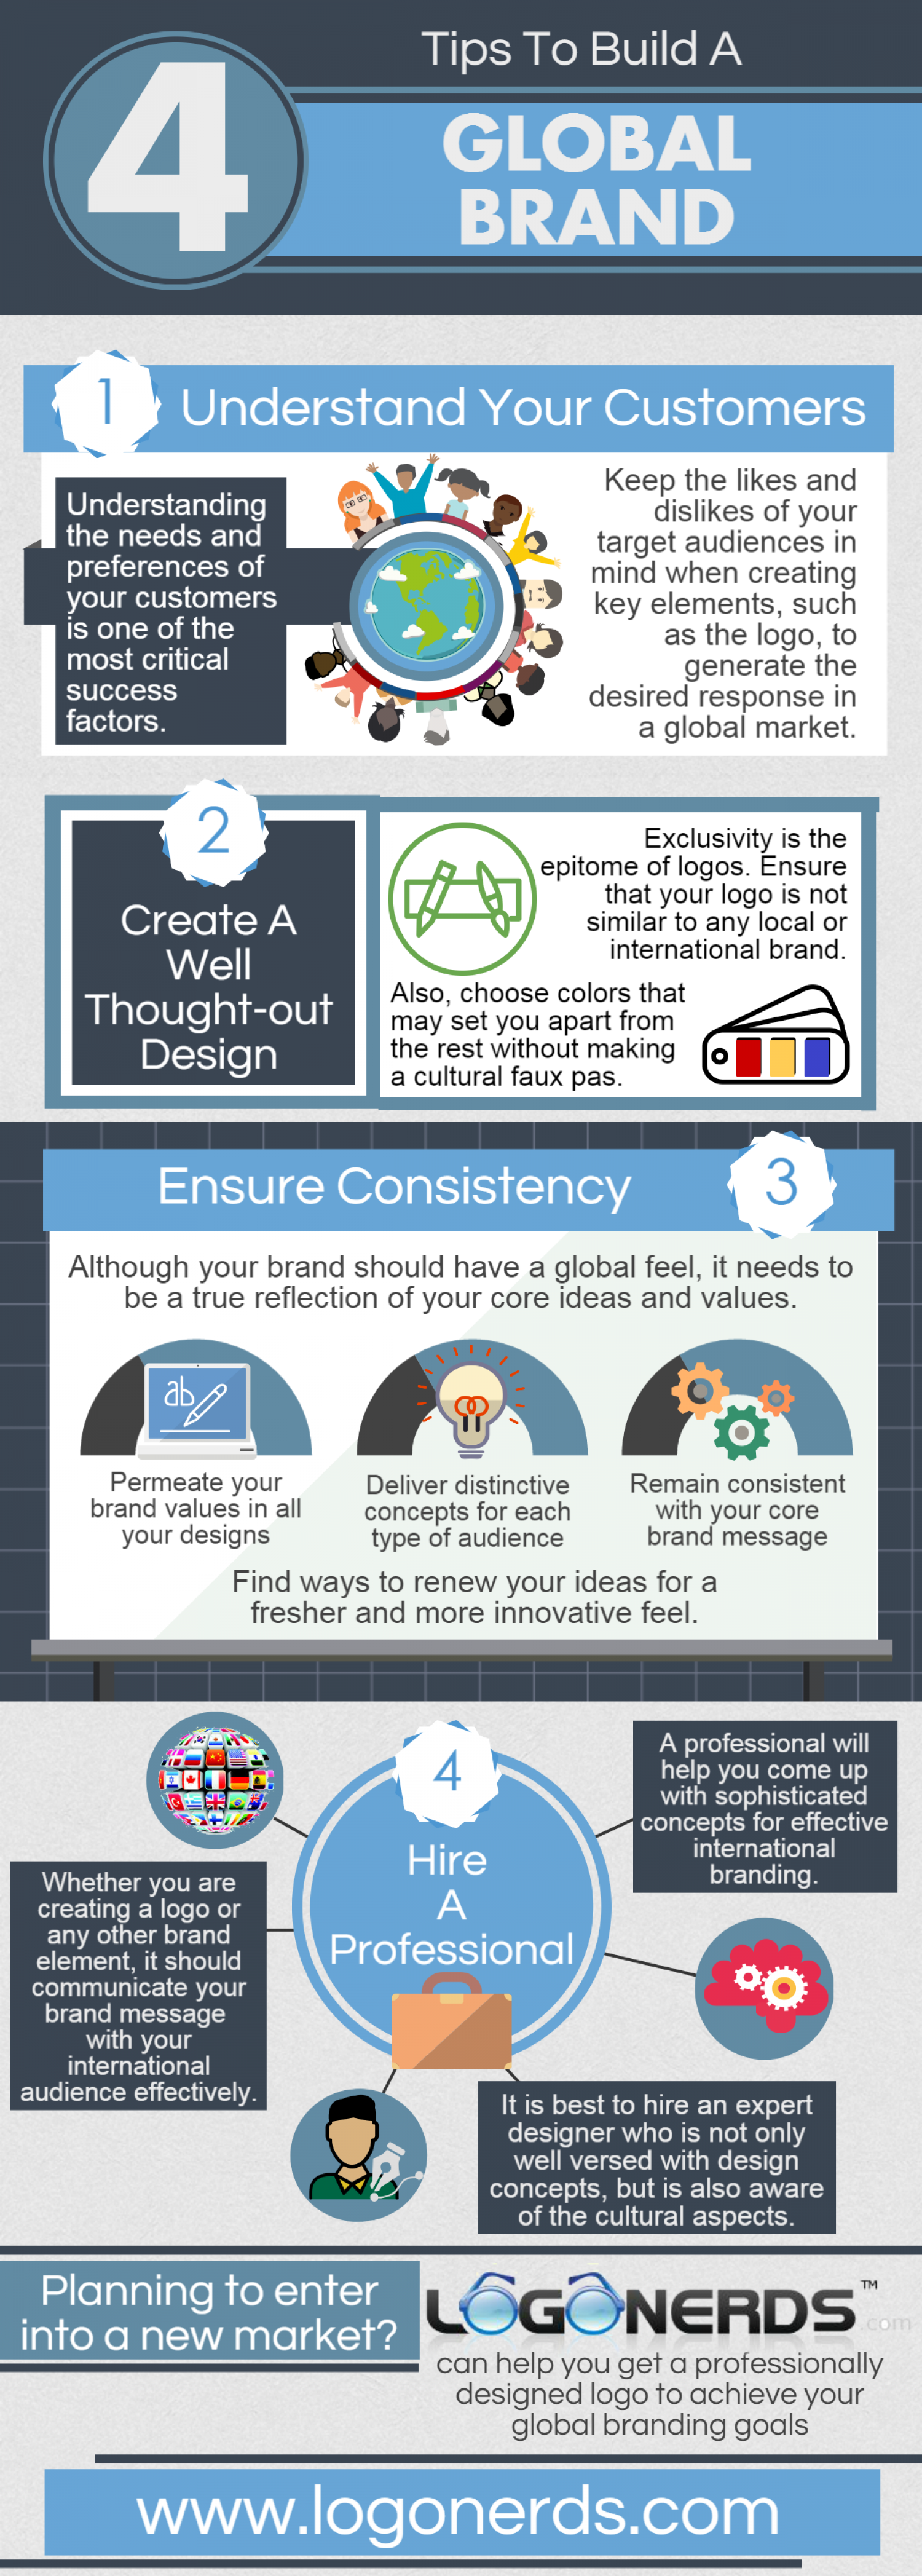 Tips to build a Global brand Infographic